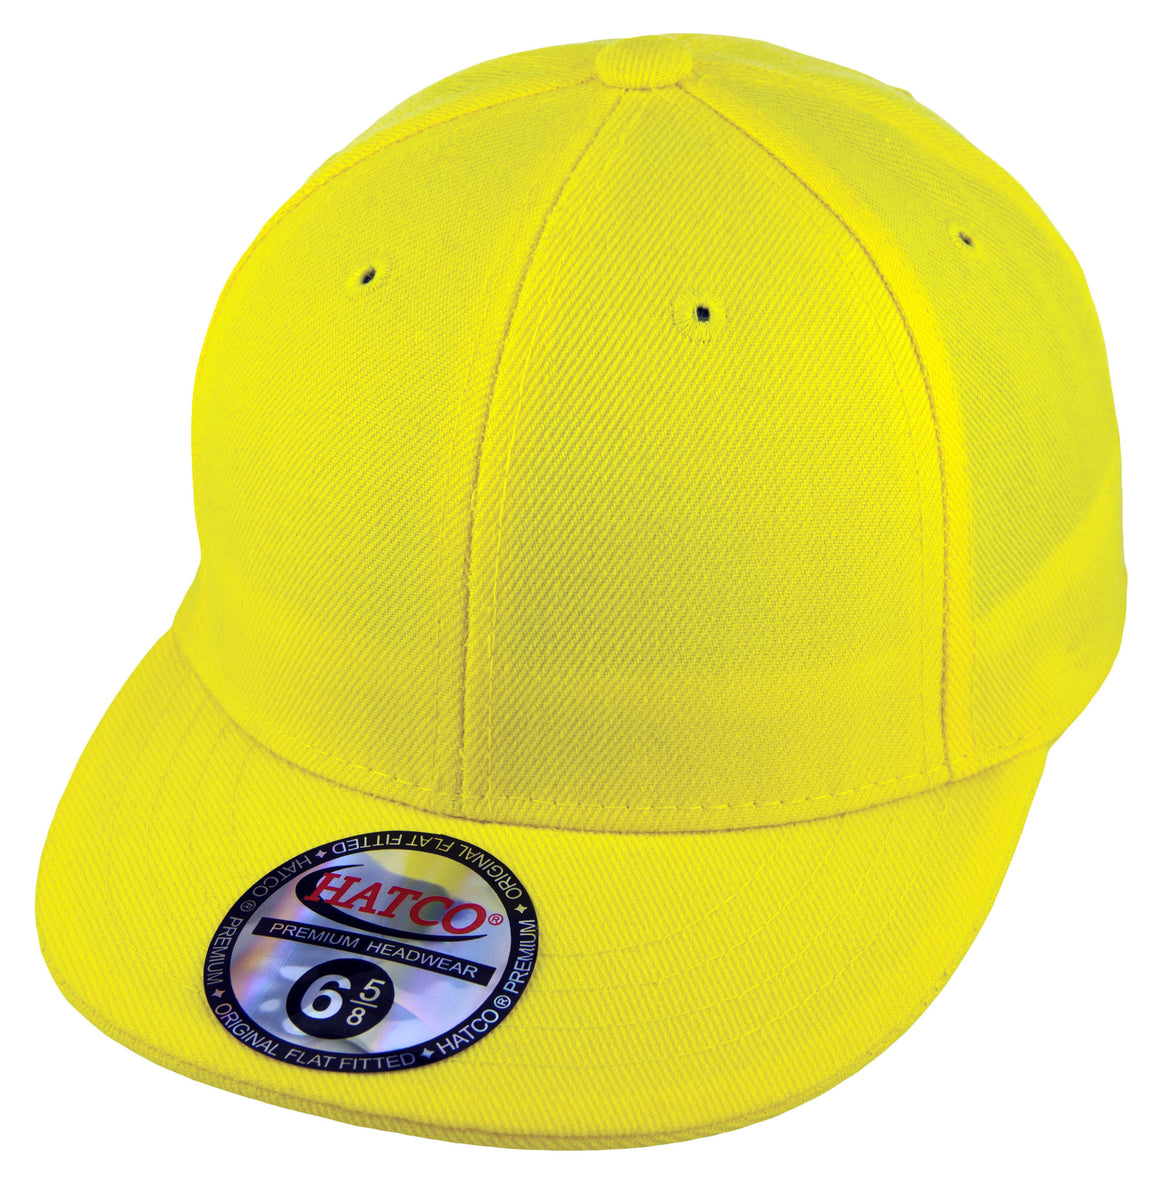 Blank Flat Fitted Cap - Kids - Yellow - HATCOcaps.com